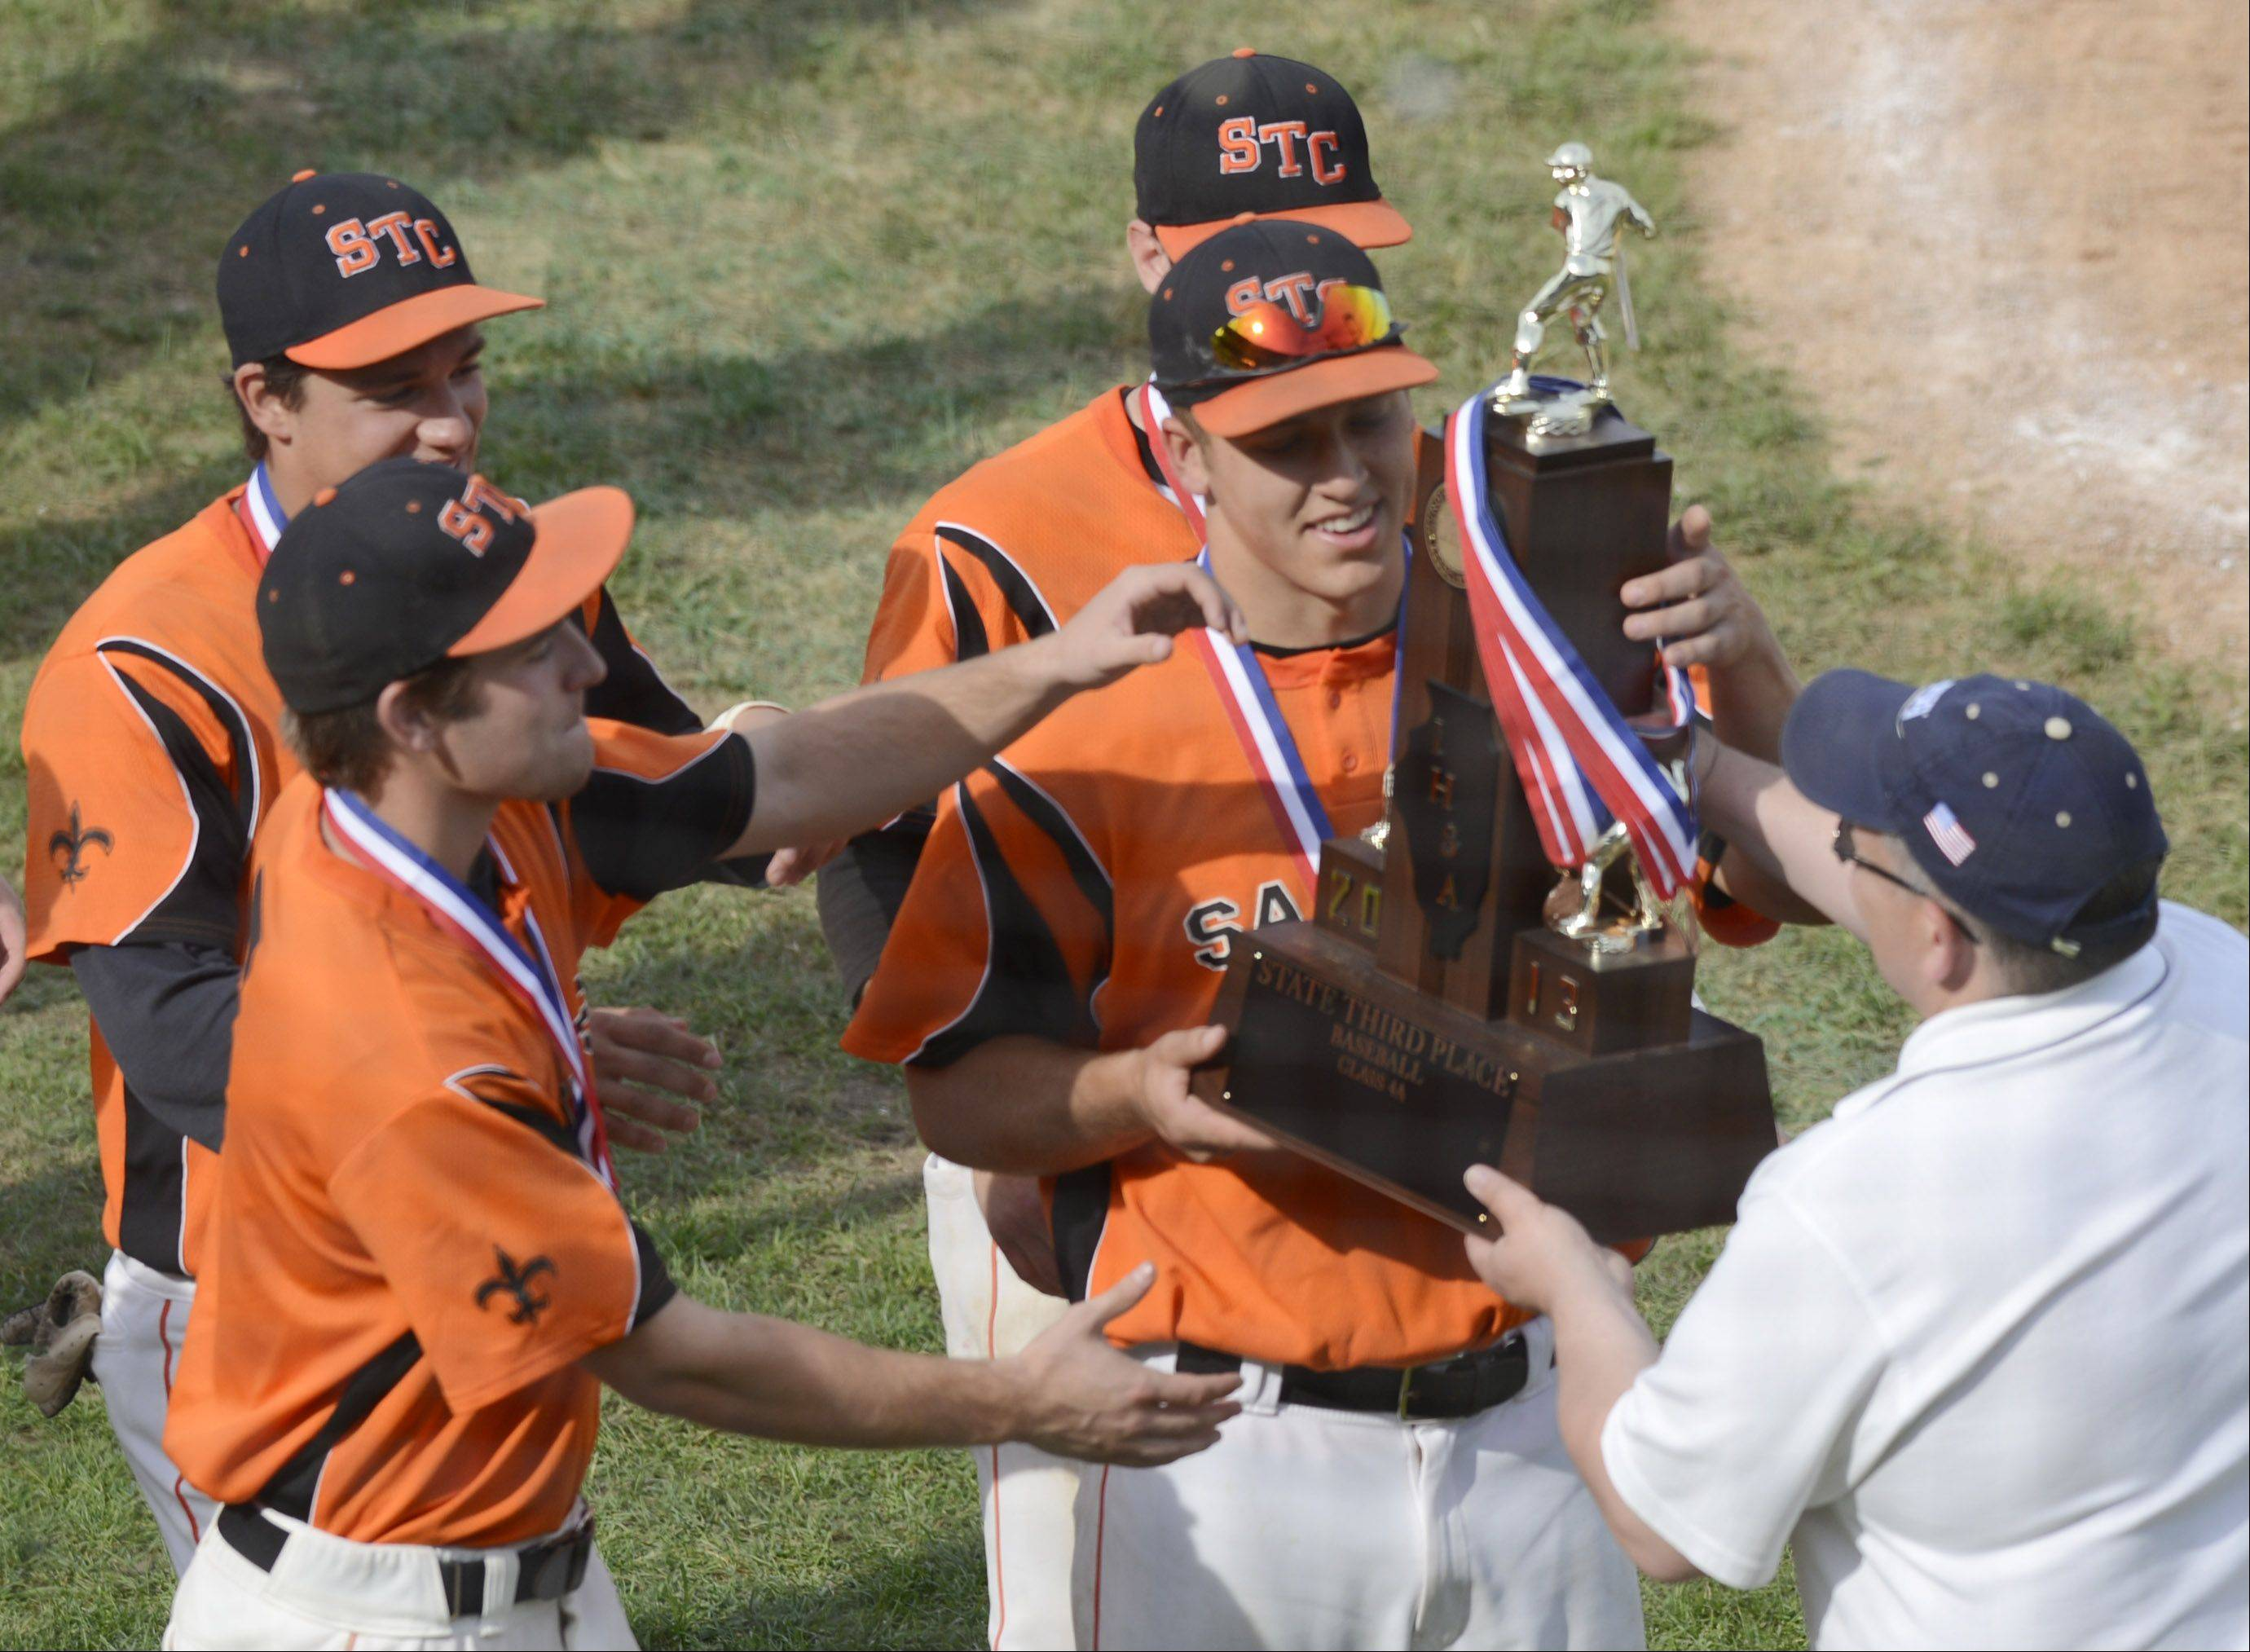 St. Charles East players receive their third-place trophy following the Class 4A baseball third-place game against Neuqua Valley at Silver Cross Field in Joliet on Saturday.